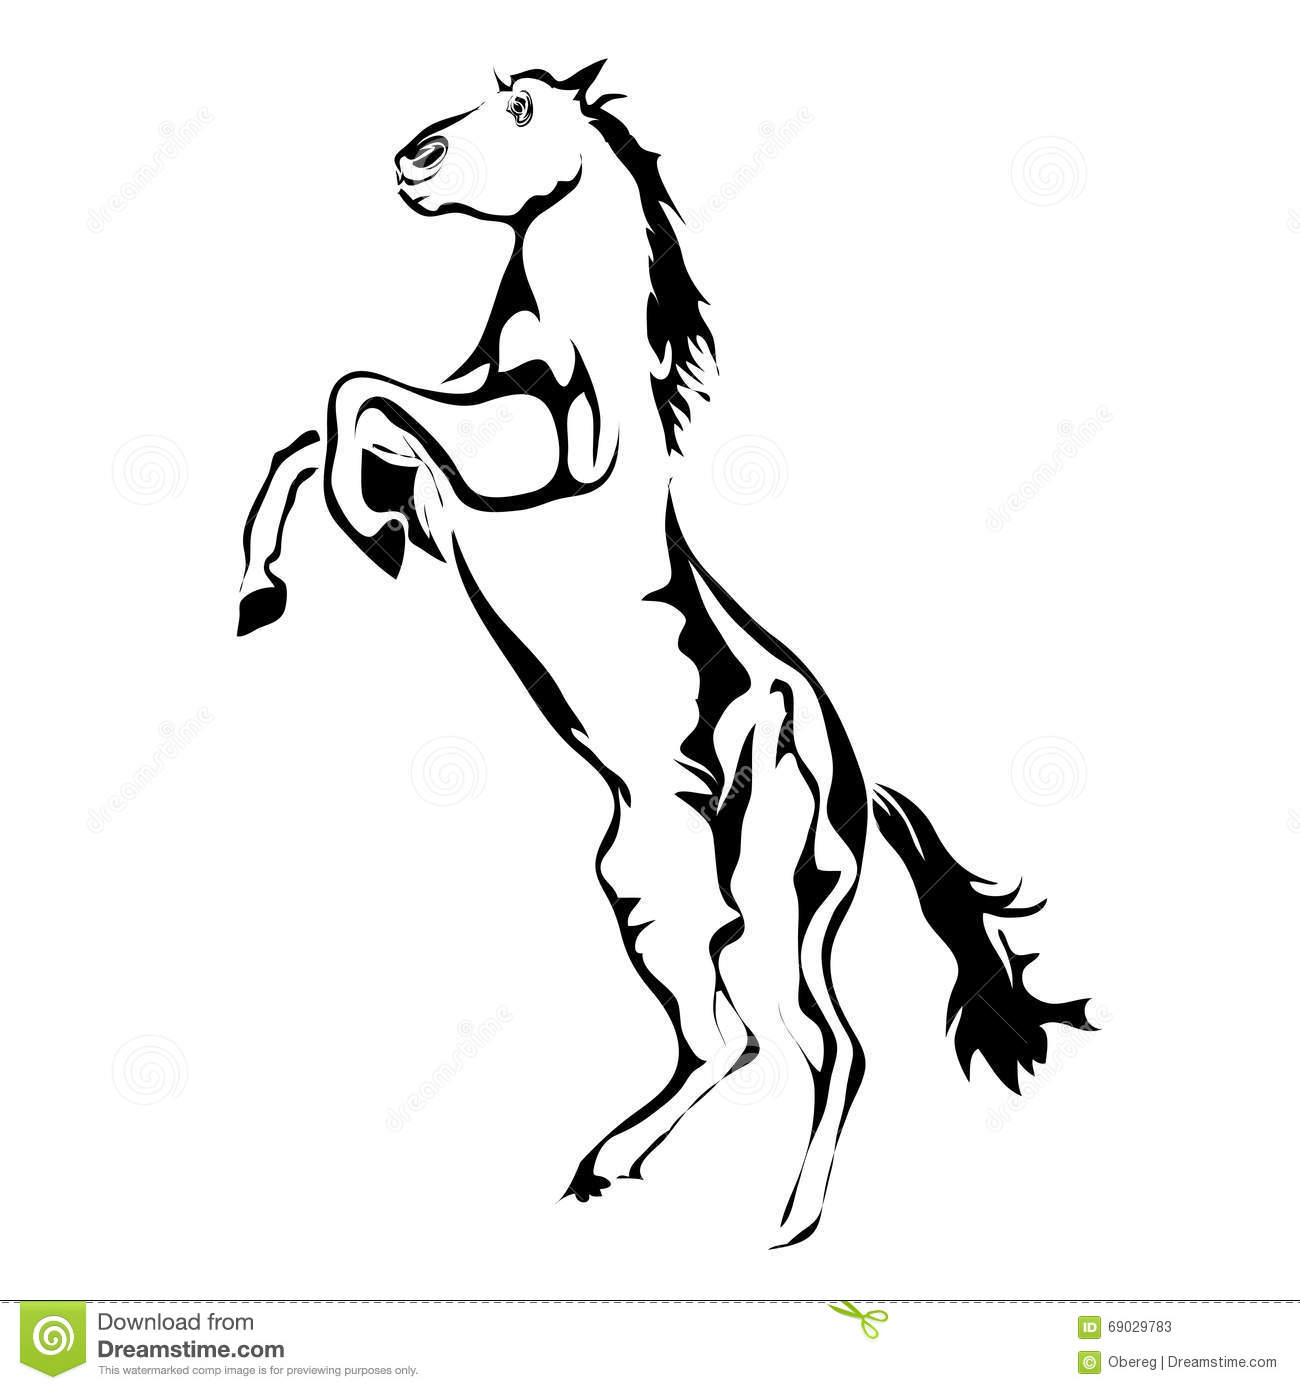 Outline Horse Vector Image Stock Vector Illustration Of Freedom Horse 69029783